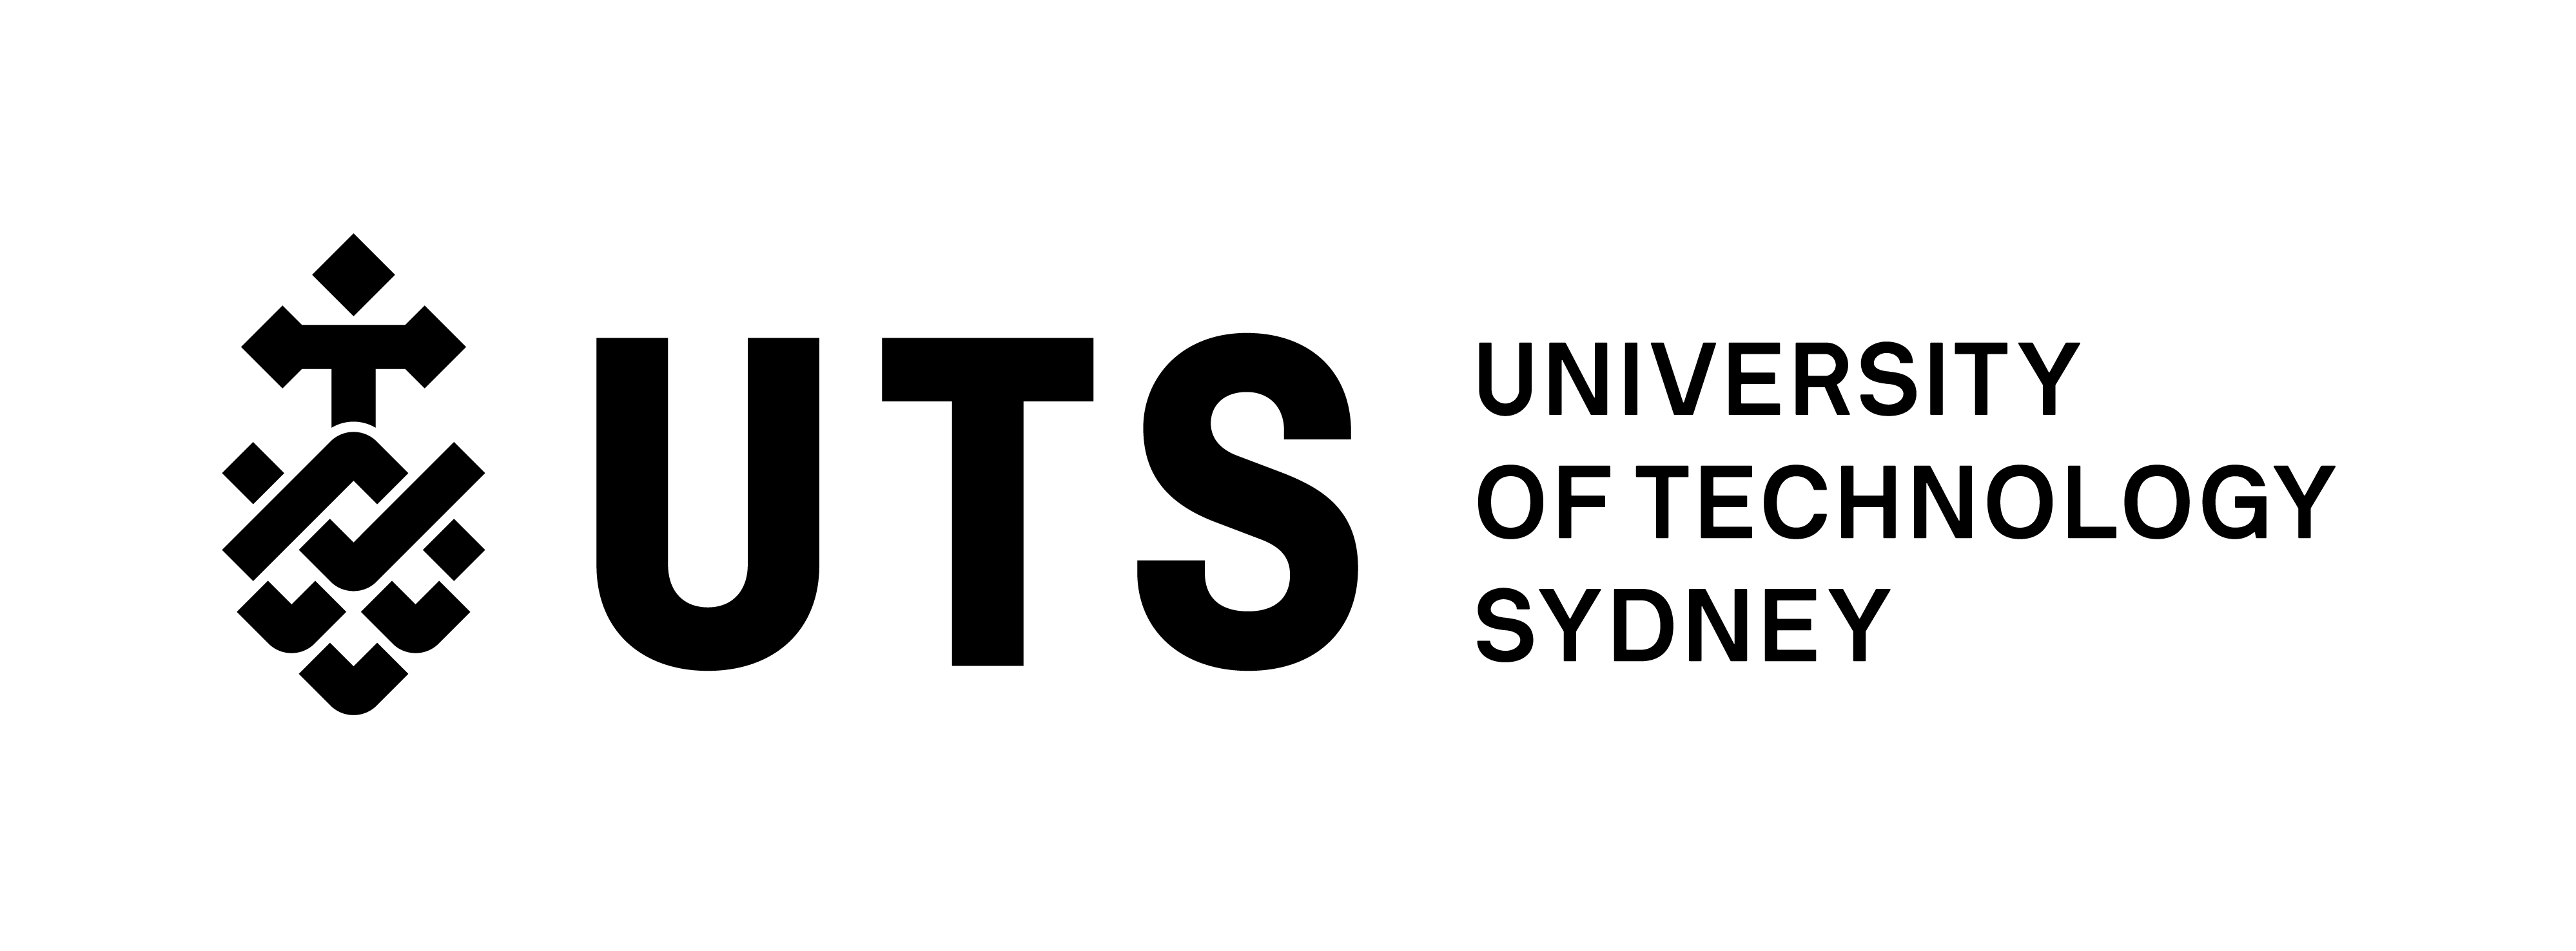 University of Technology Sydney - Bachelor of Engineering Science